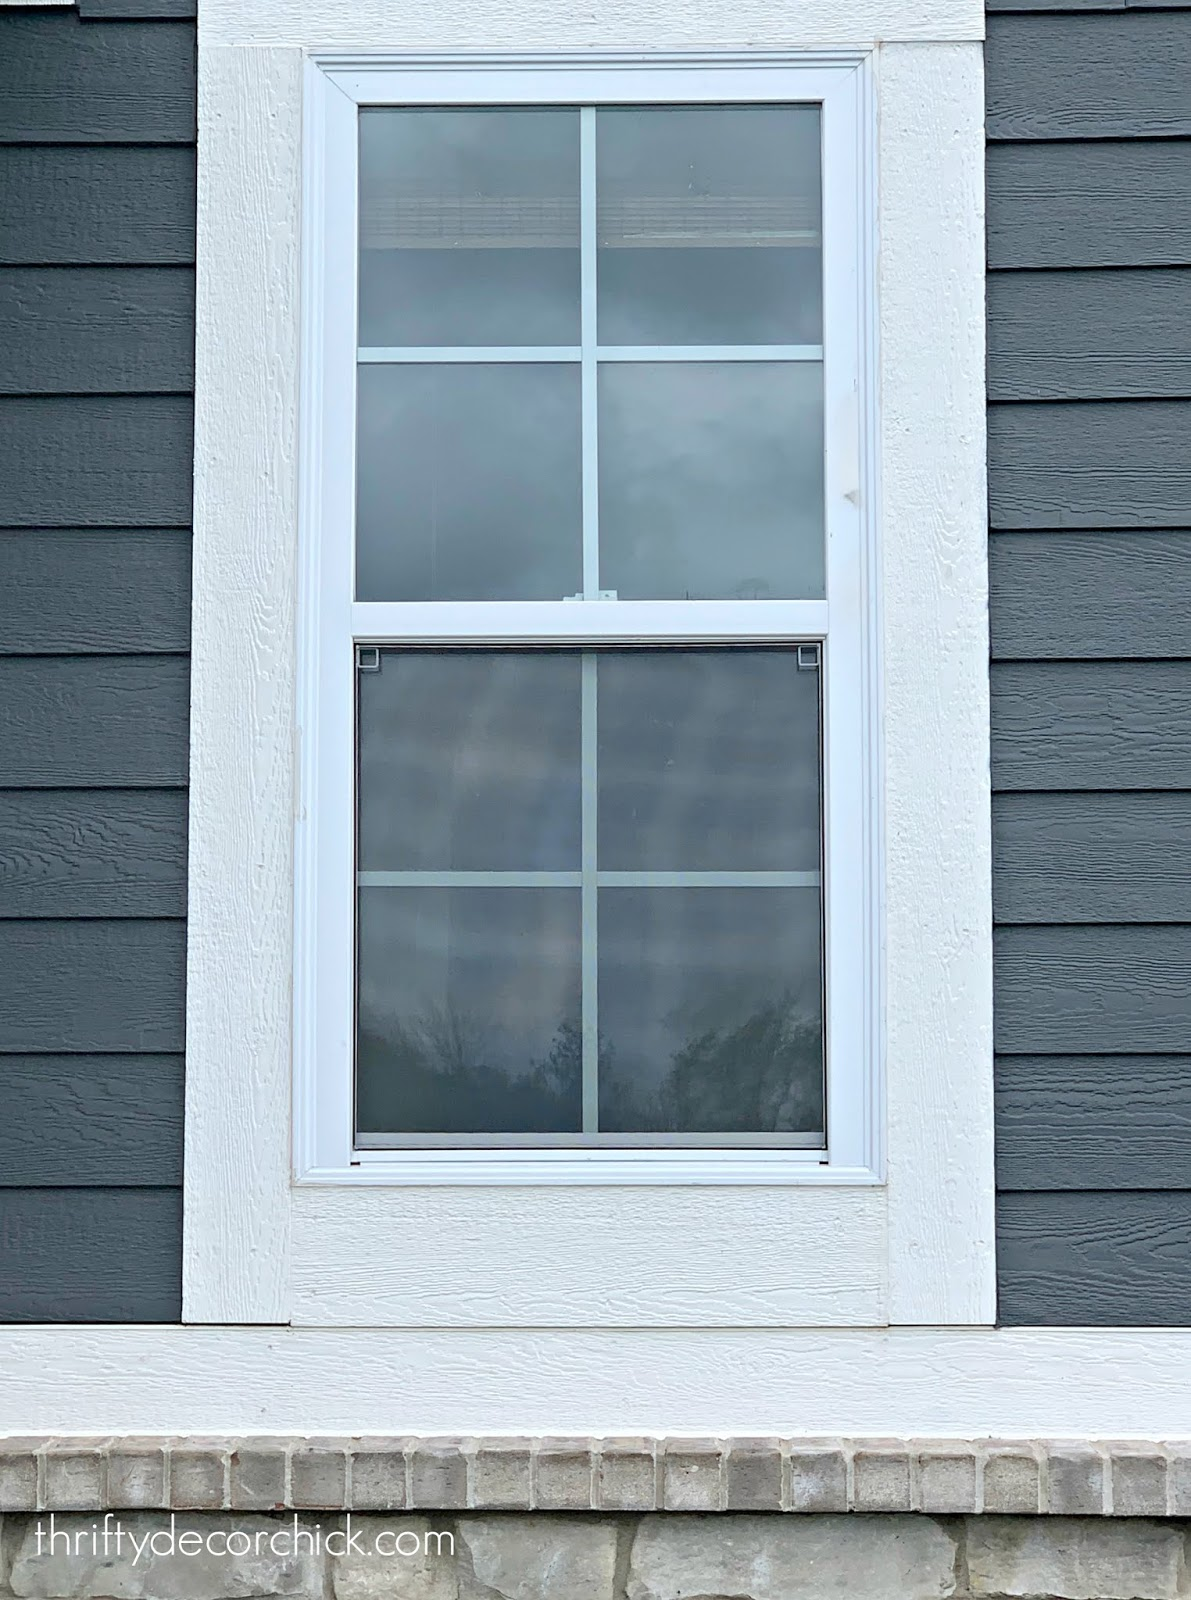 How to make a bathroom window private for cheap